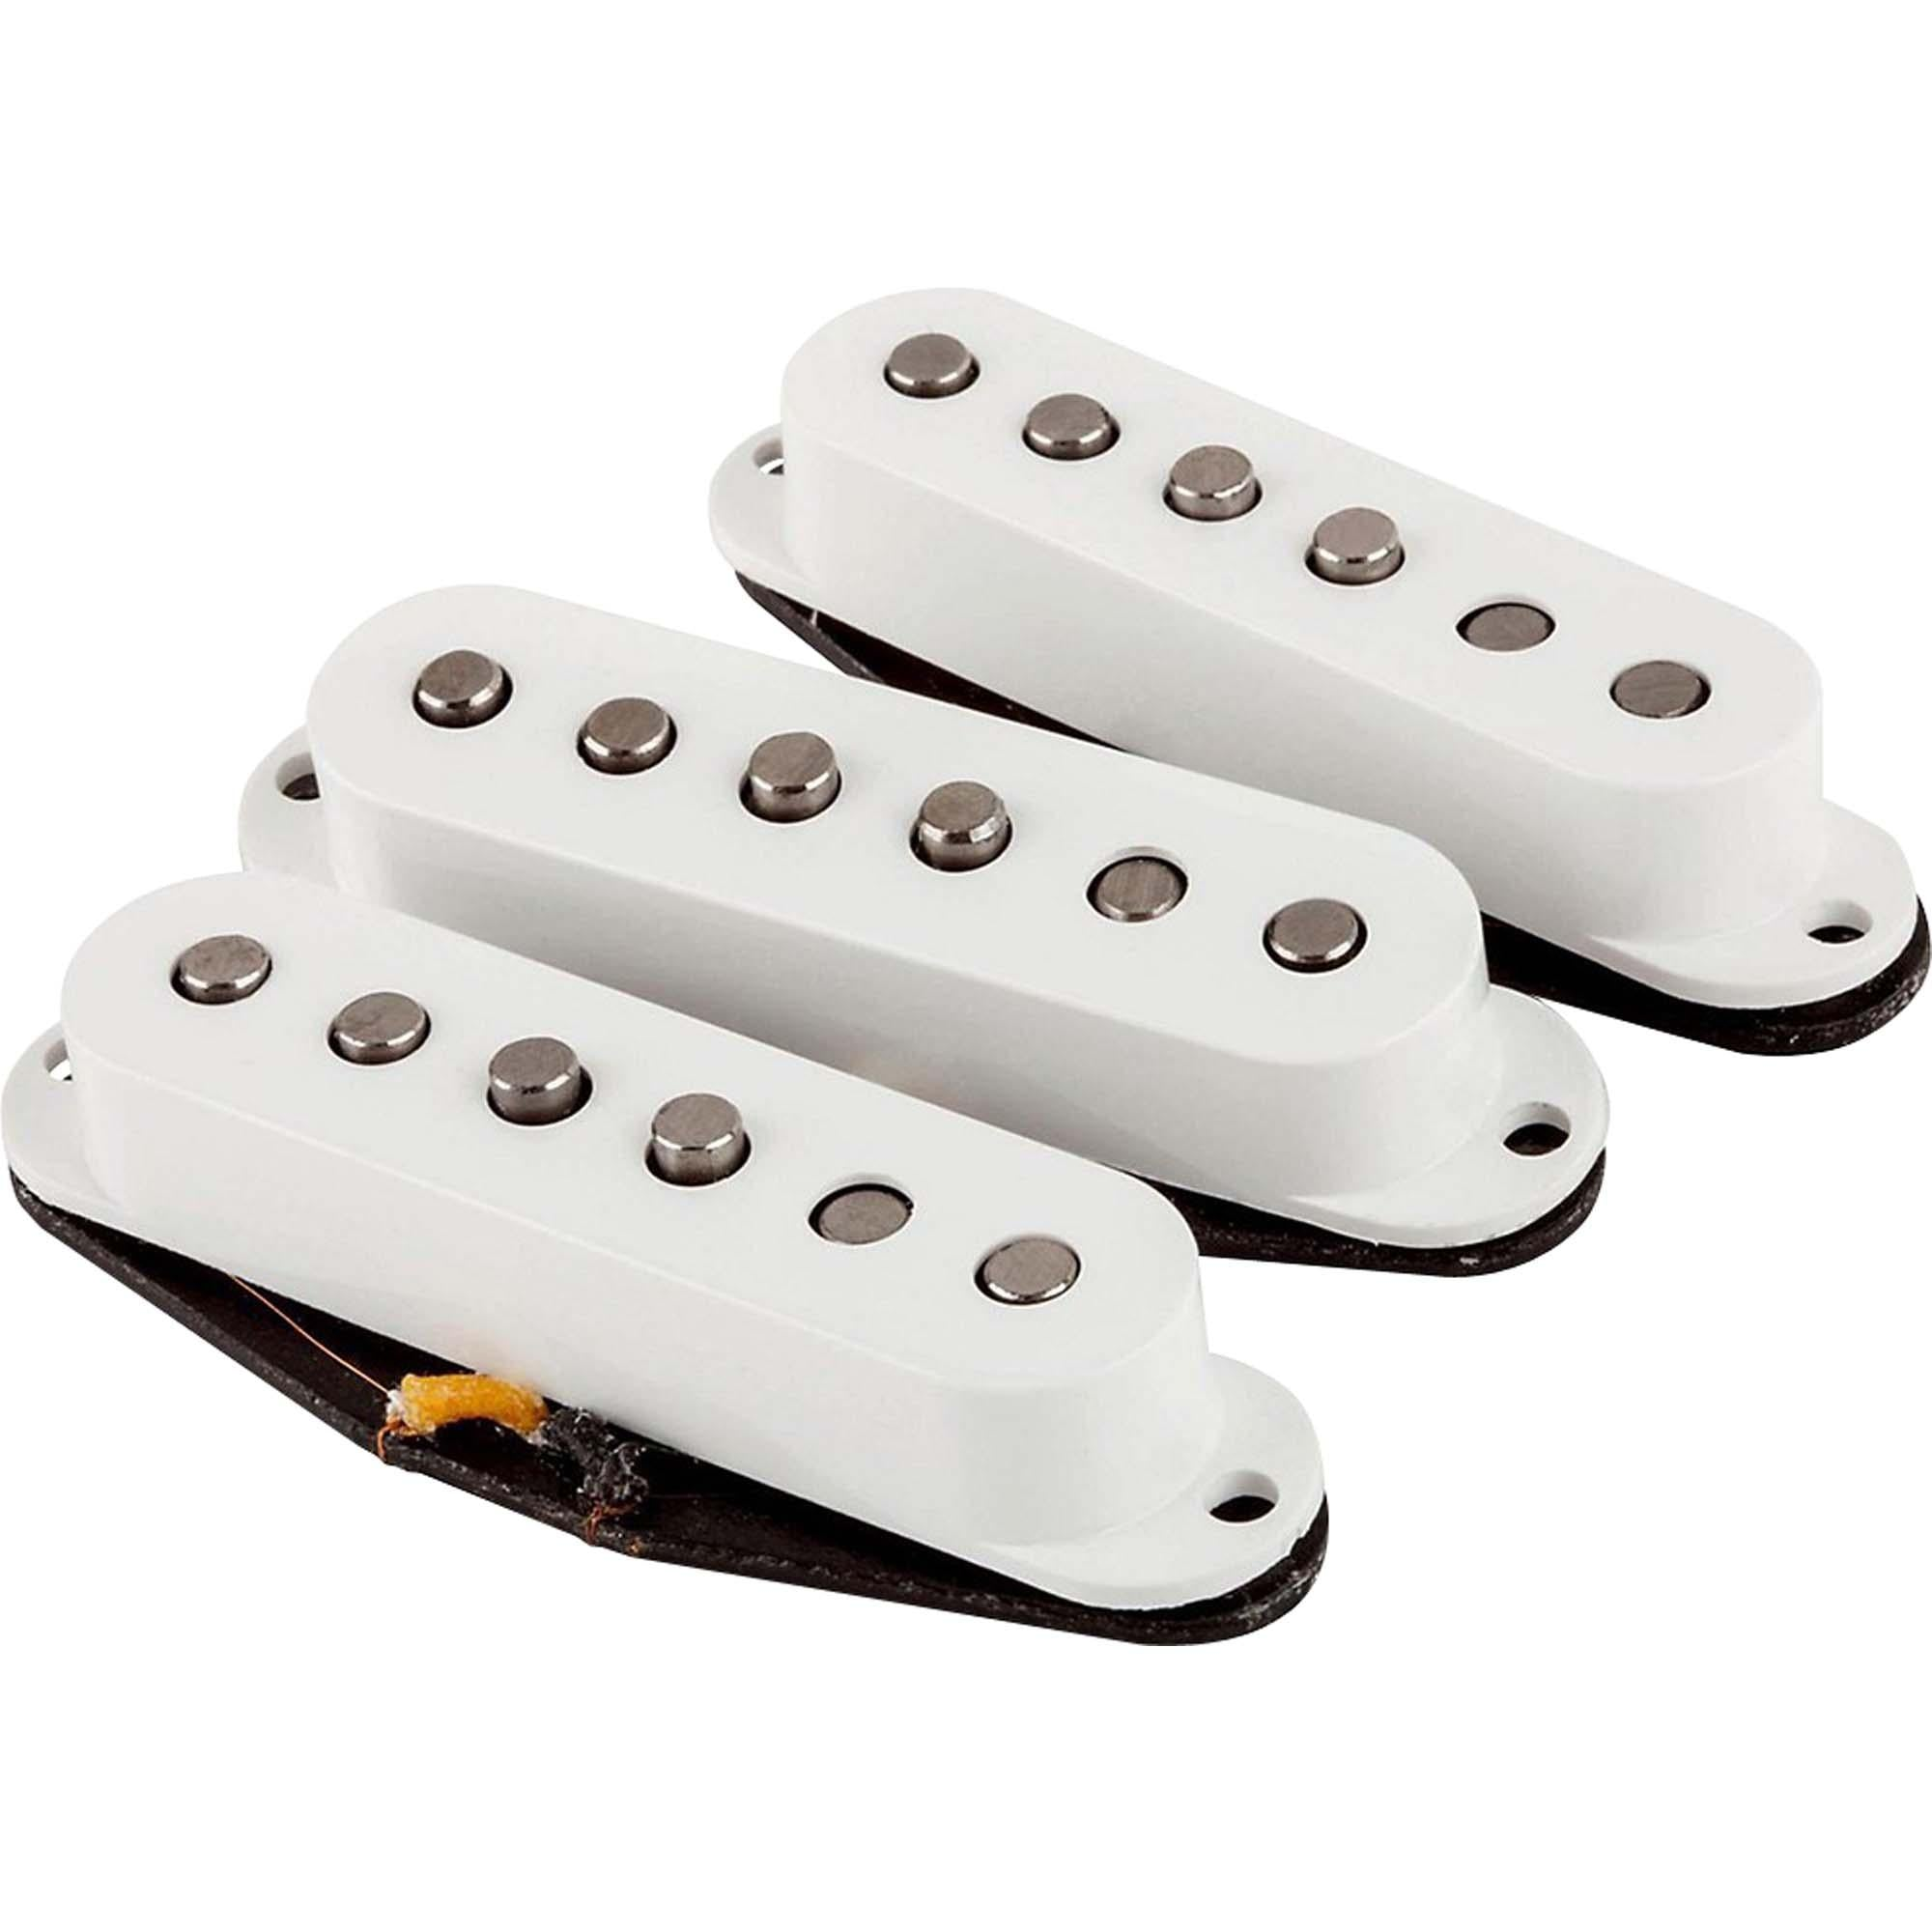 Set de Captadores Para Guitarra FAT '50 STRAT Branco FENDER - MagazineInnovar